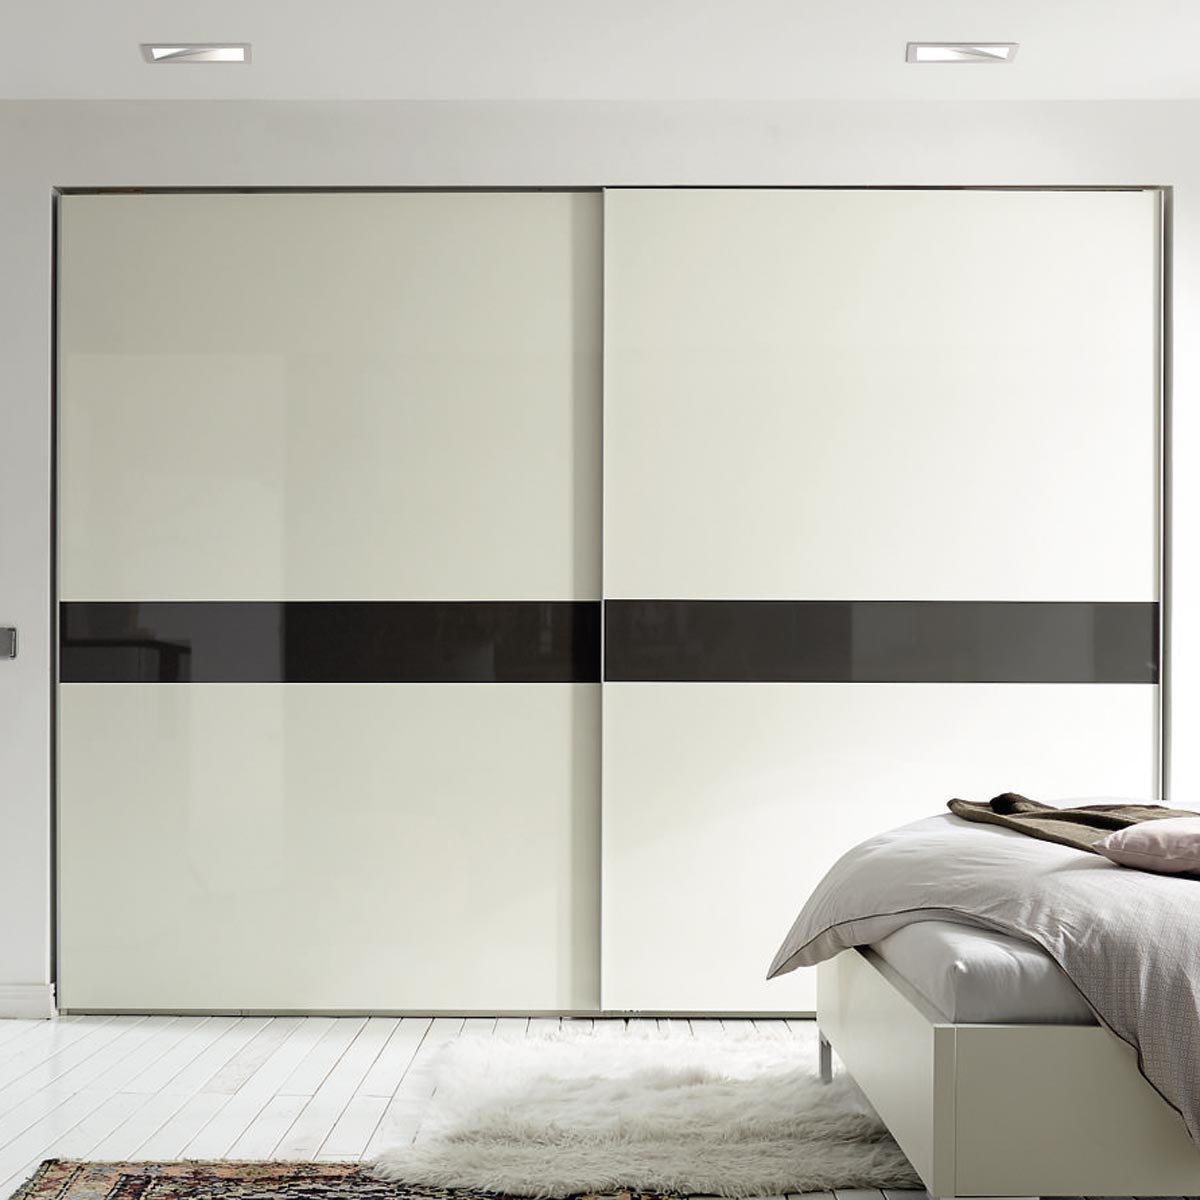 NOW! WARDROBES BY HÜLSTA KLEIDERSCHRANK C 225.4x252x67.8